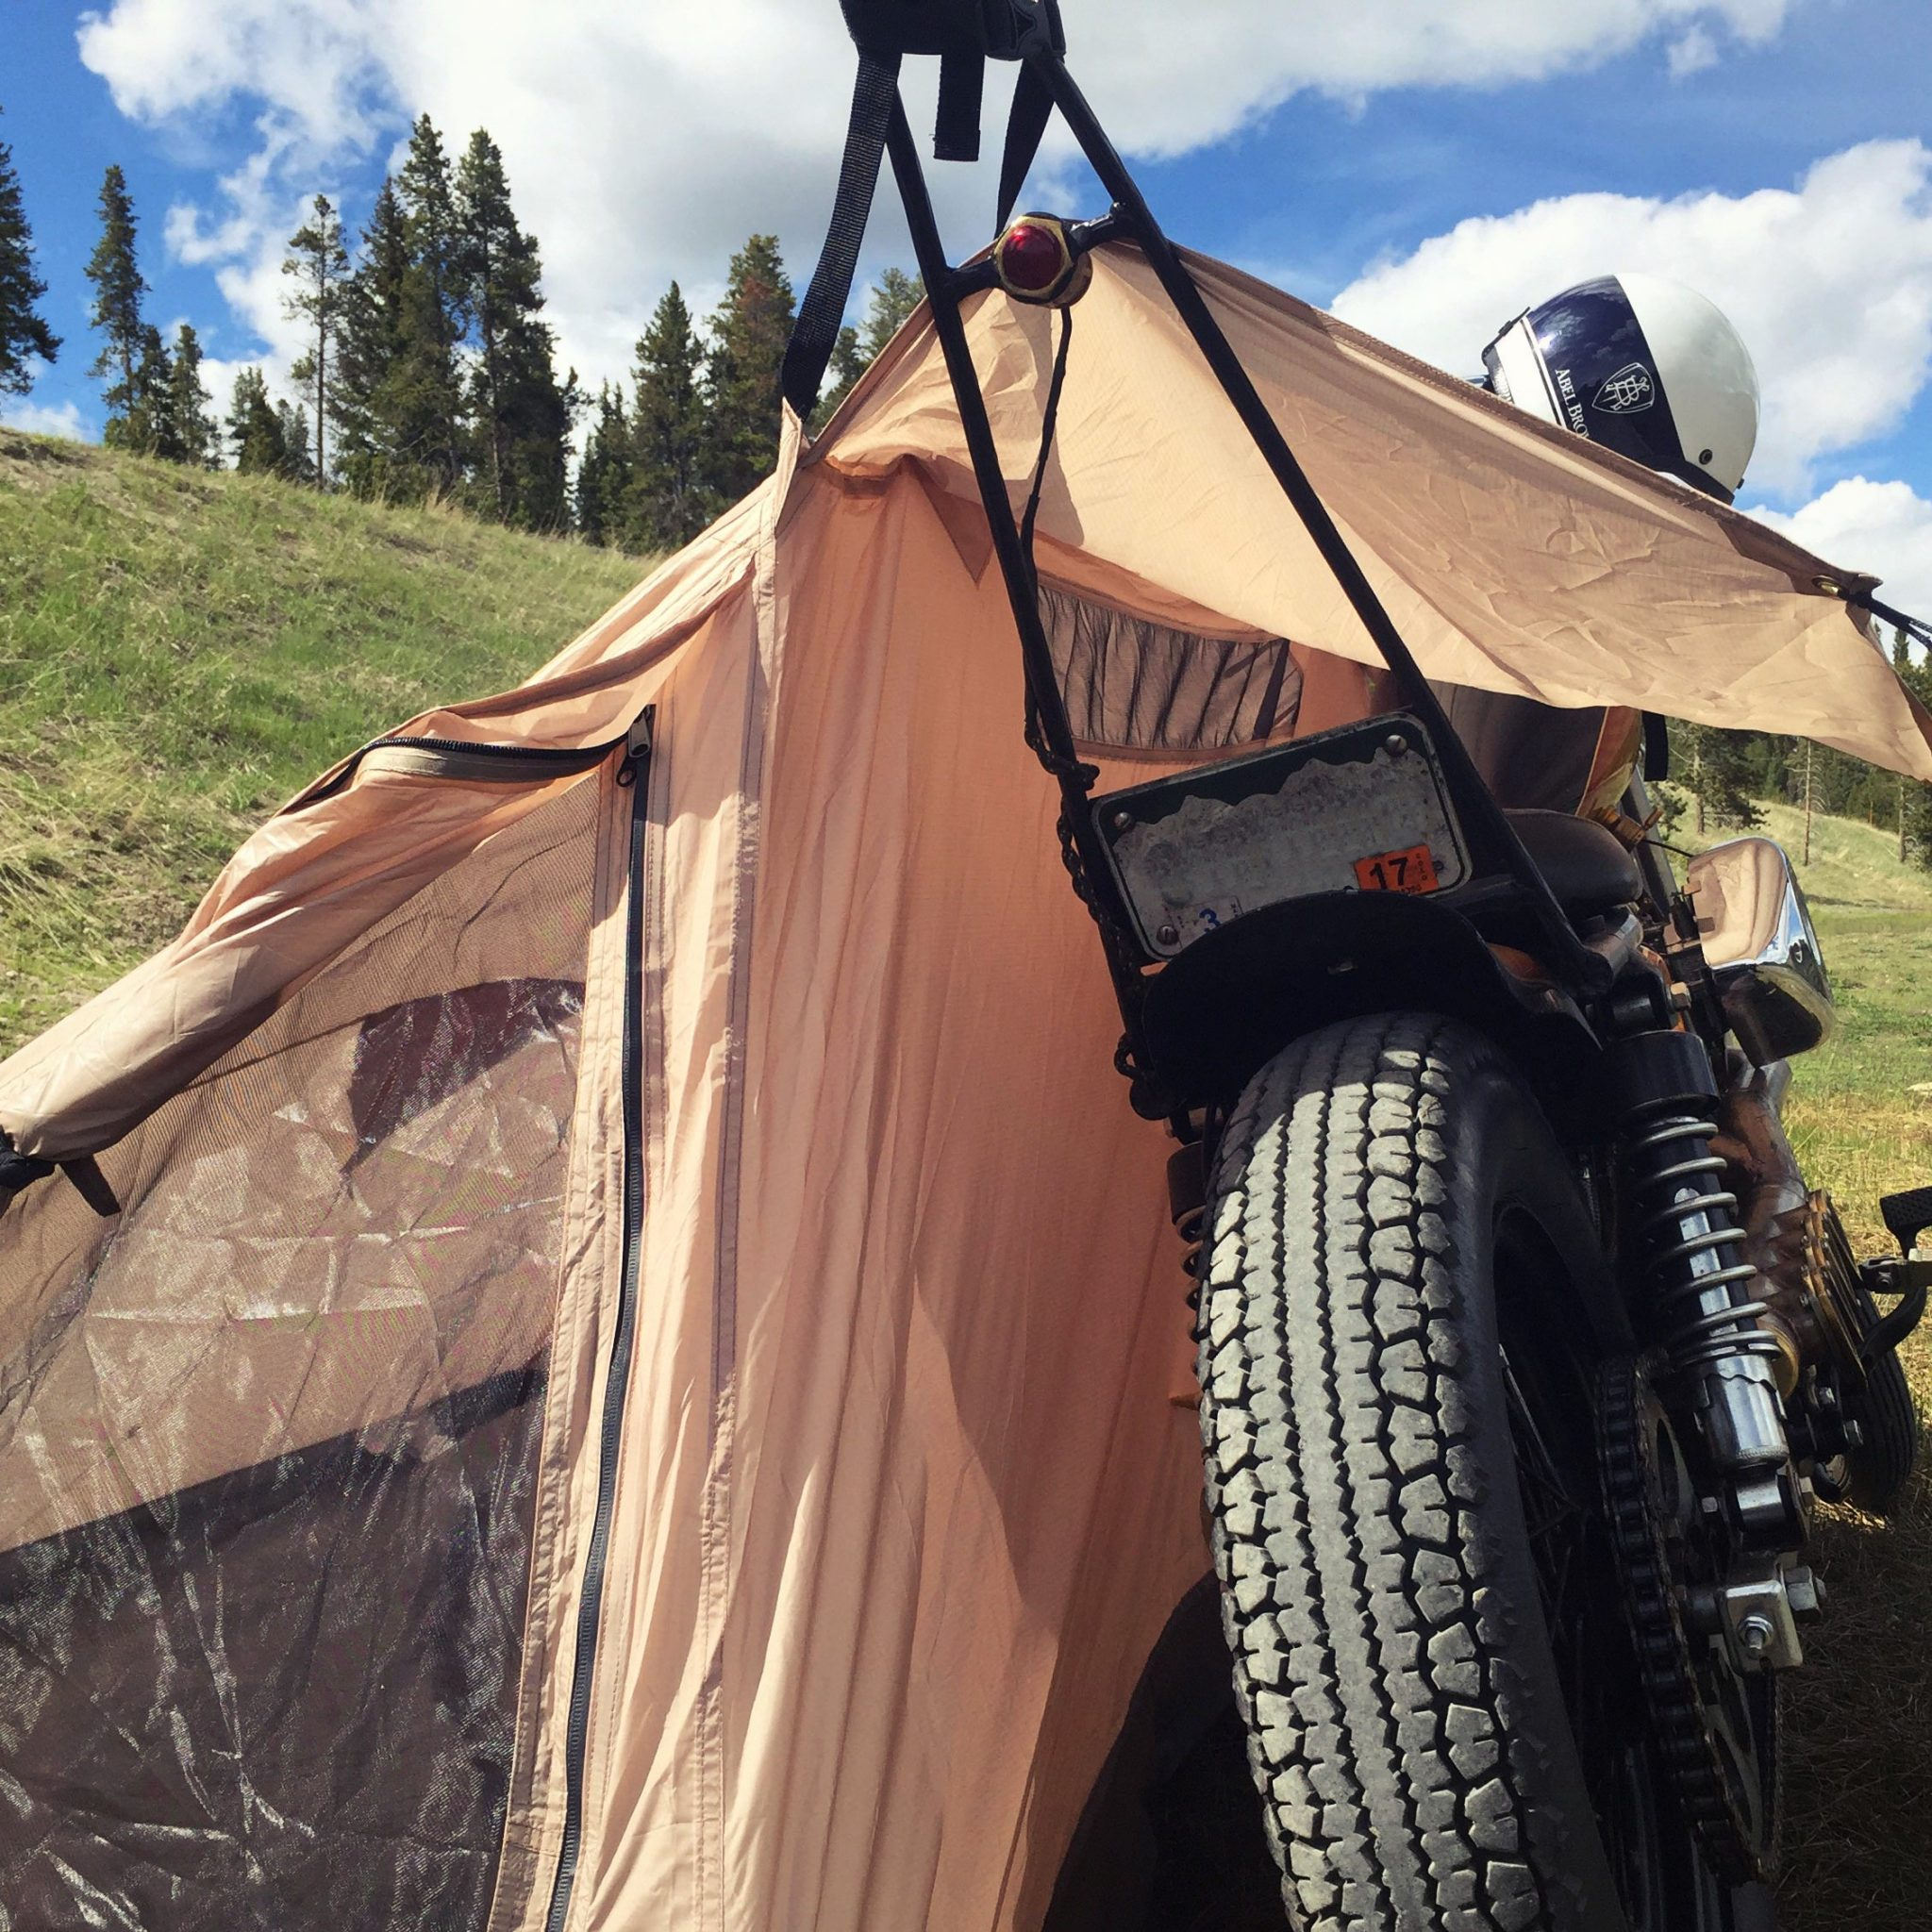 nomad-motorcycle-c&-tent-3 & Nomad 2 Motorcycle Tent